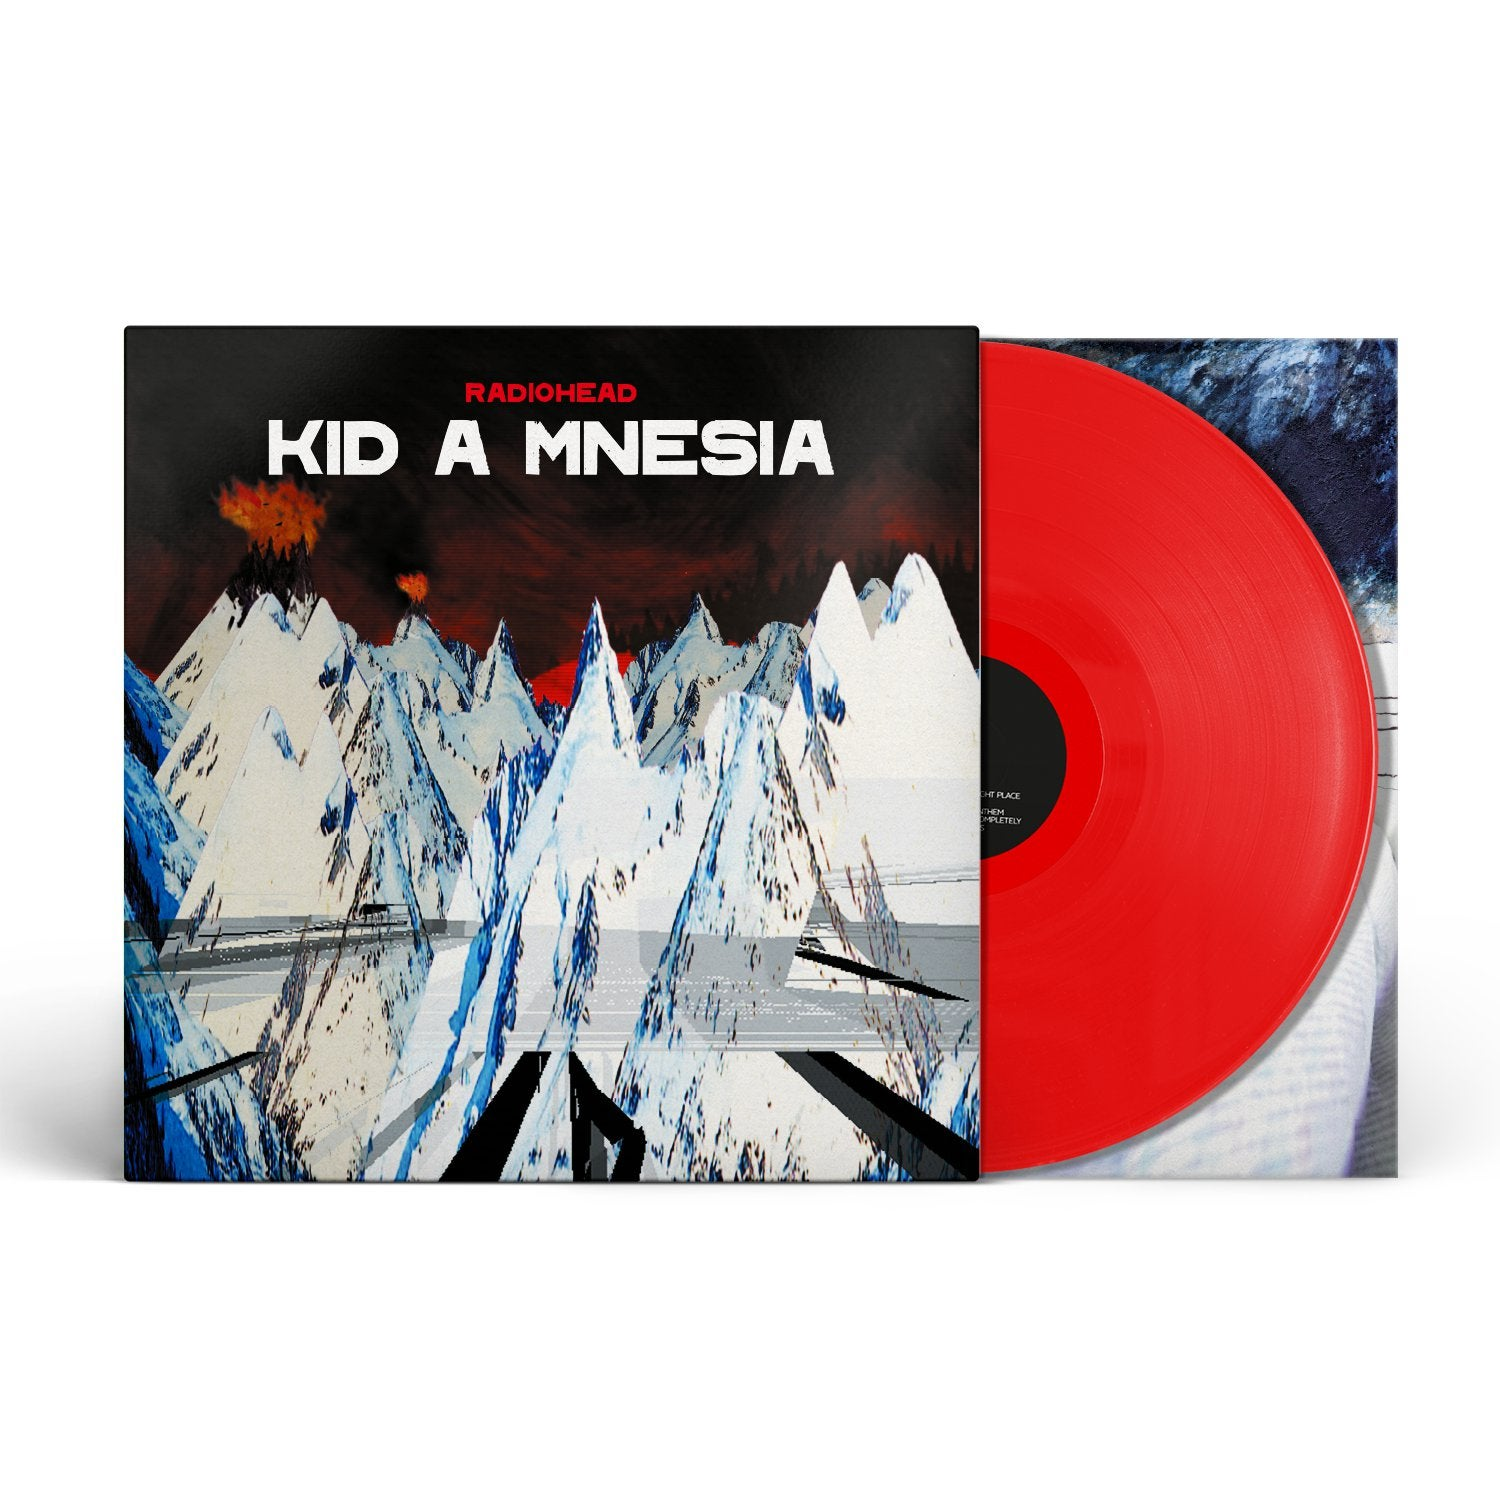 Radiohead - Kid A Mnesia Limited Edition Red 3LP